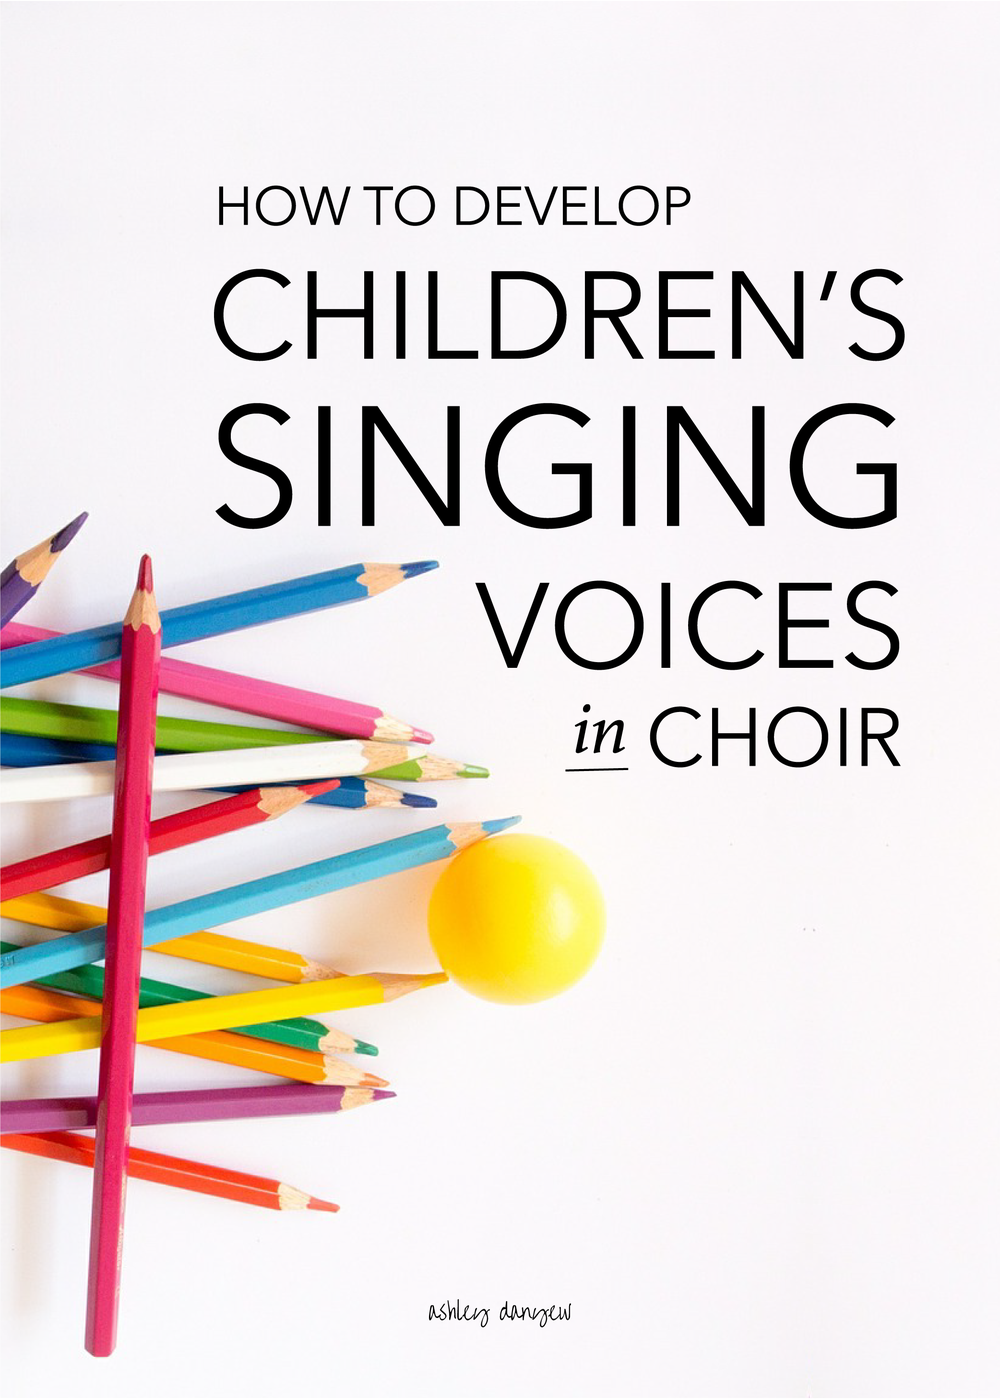 How to Develop Children's Singing Voices in Choir-03.png